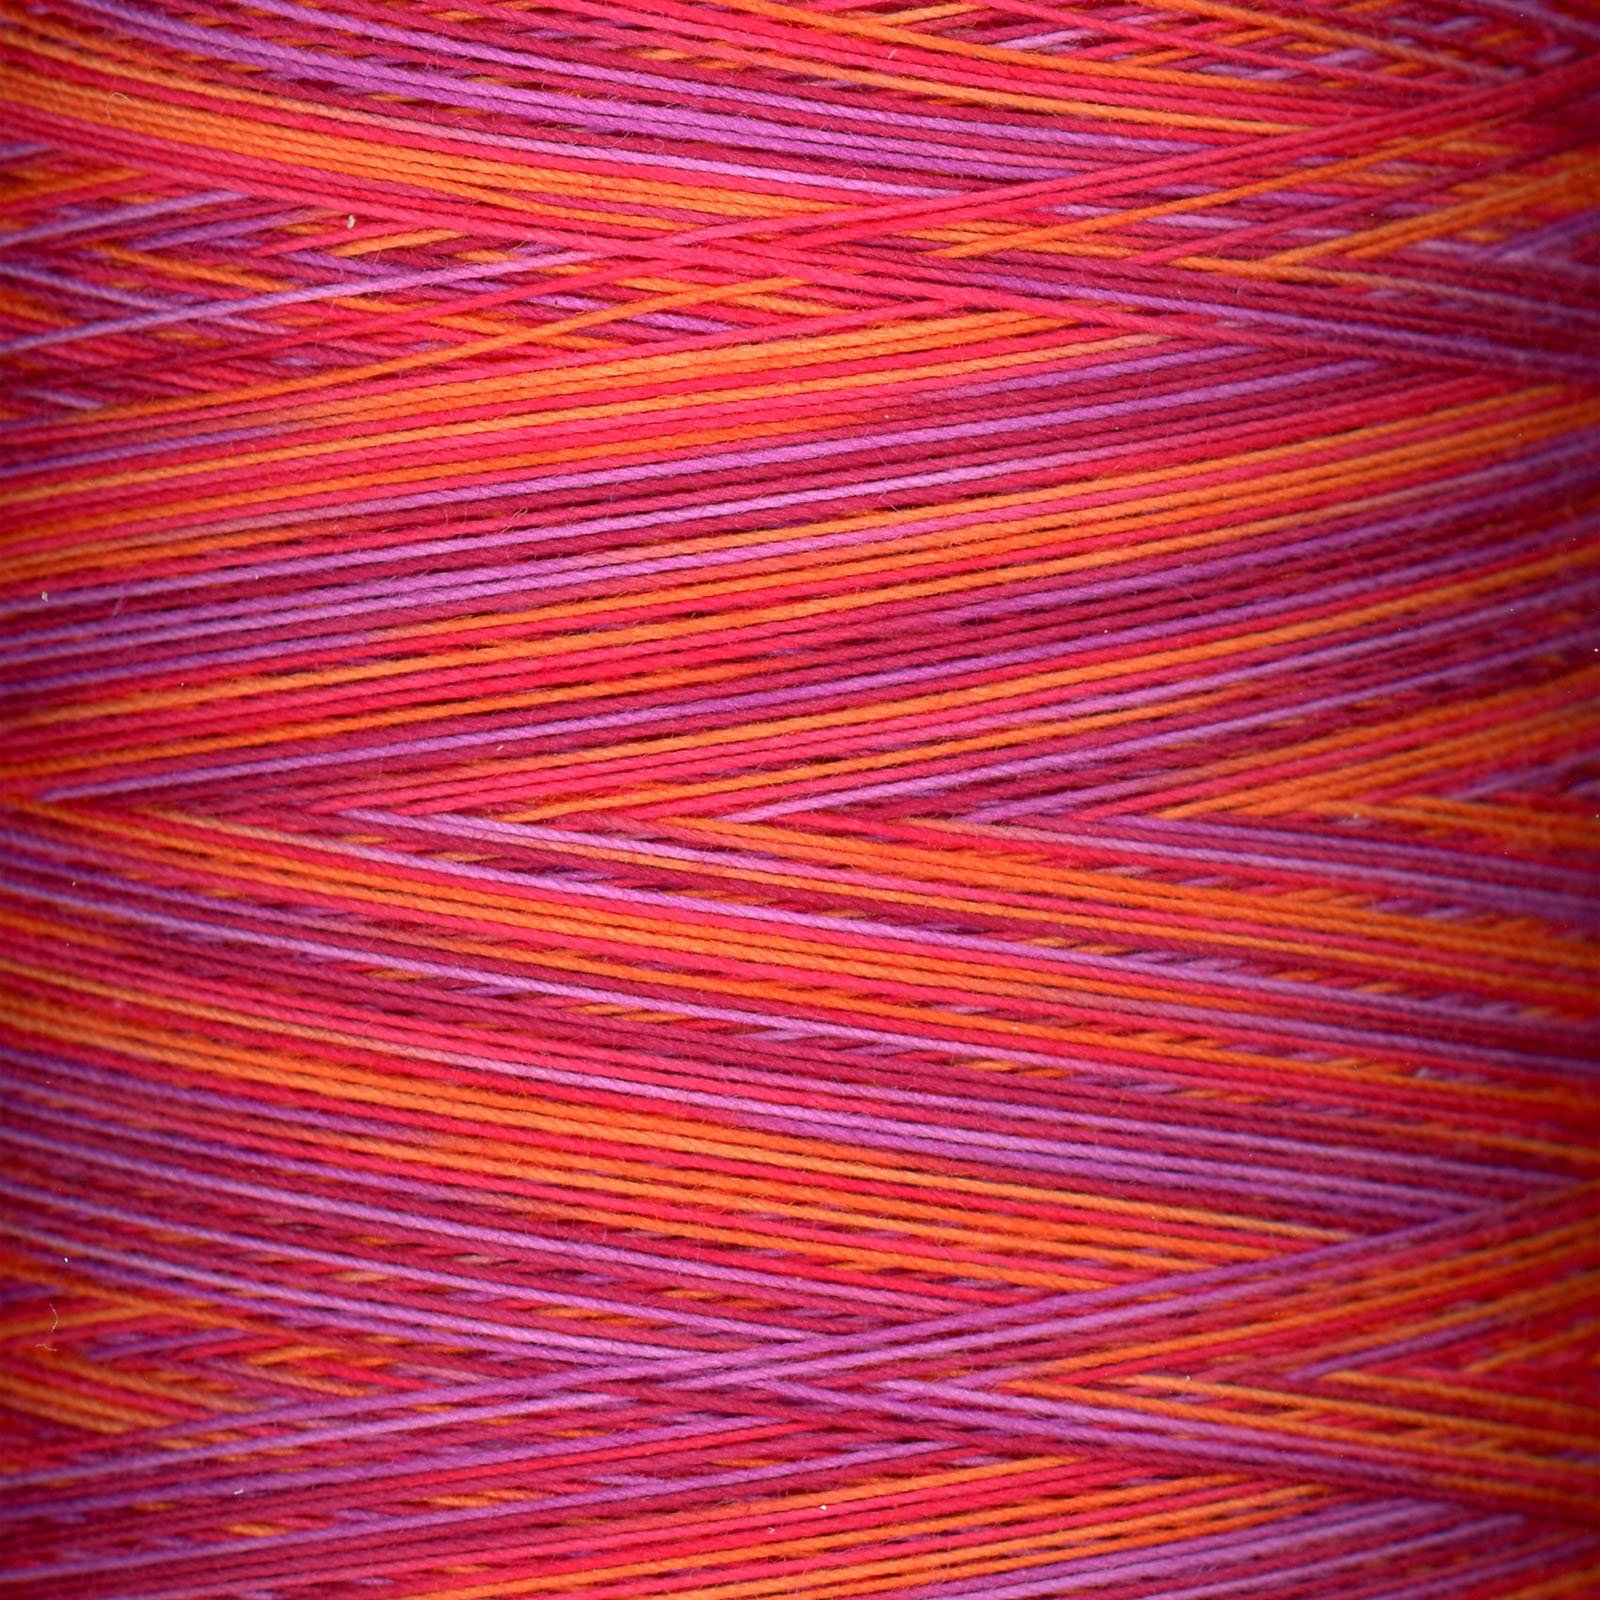 King Tut Variegated Thread #914